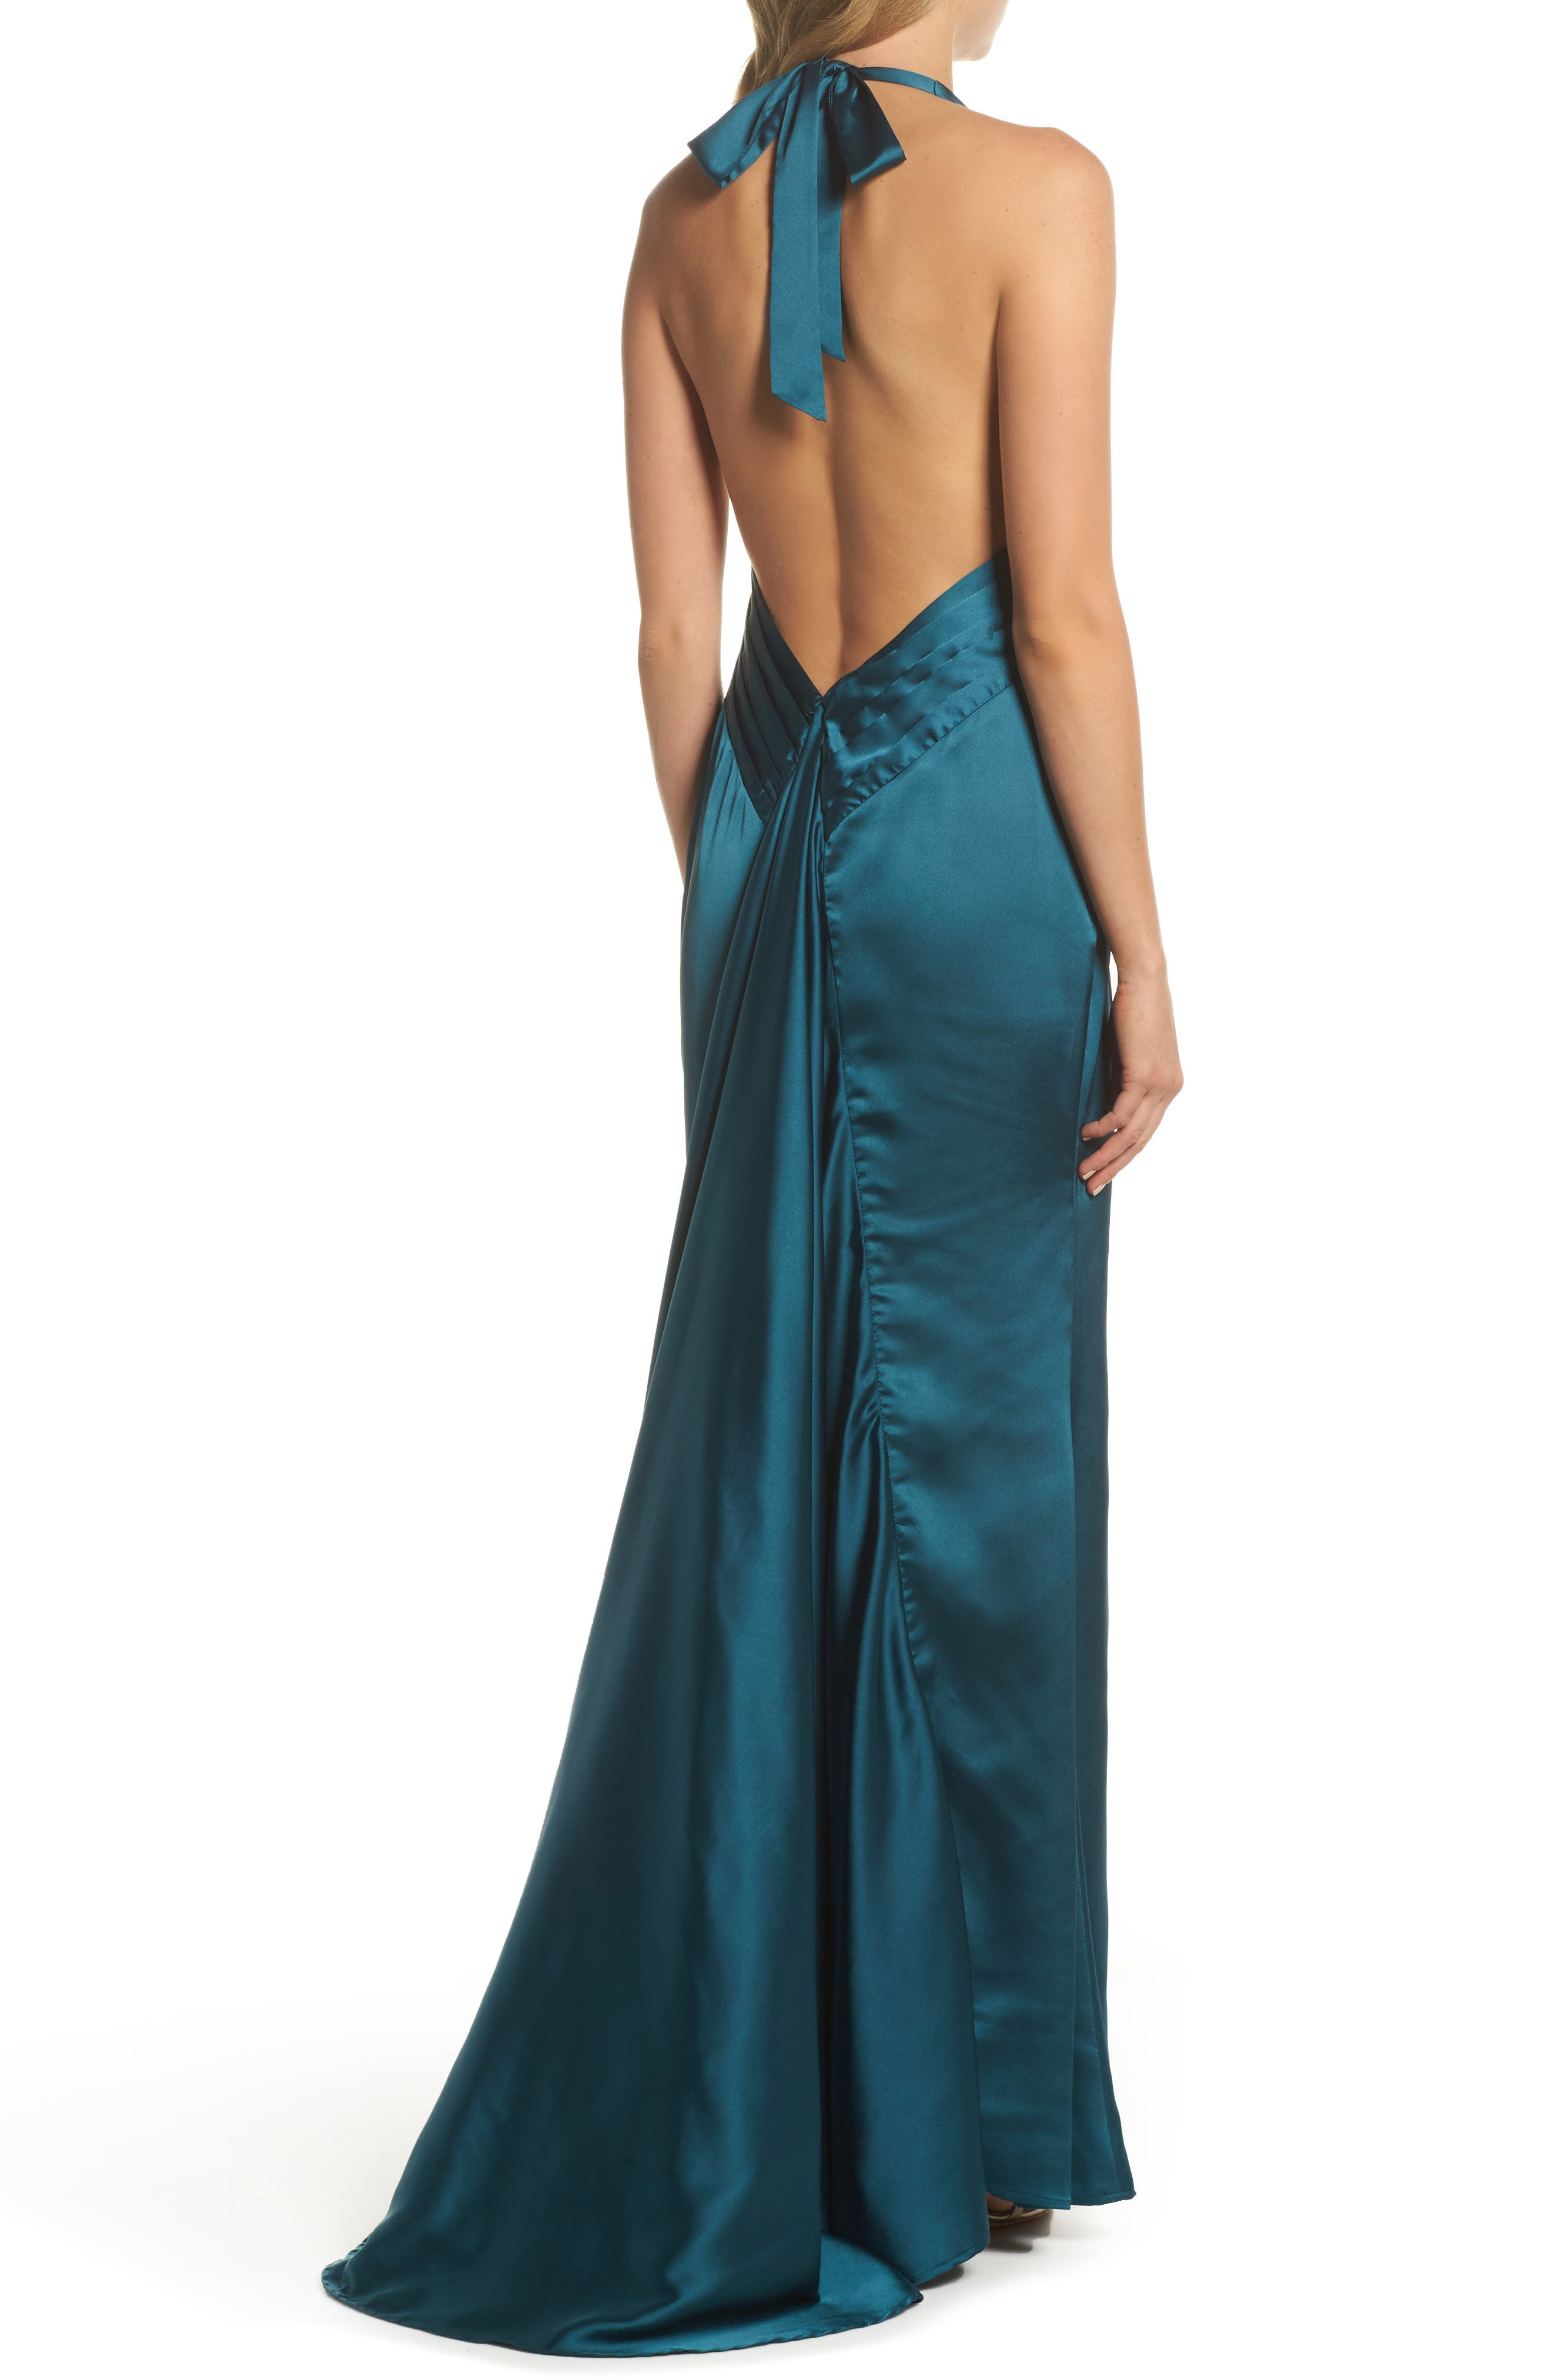 Trixie Halter Gown,                             Alternate thumbnail 2, color,                             Green